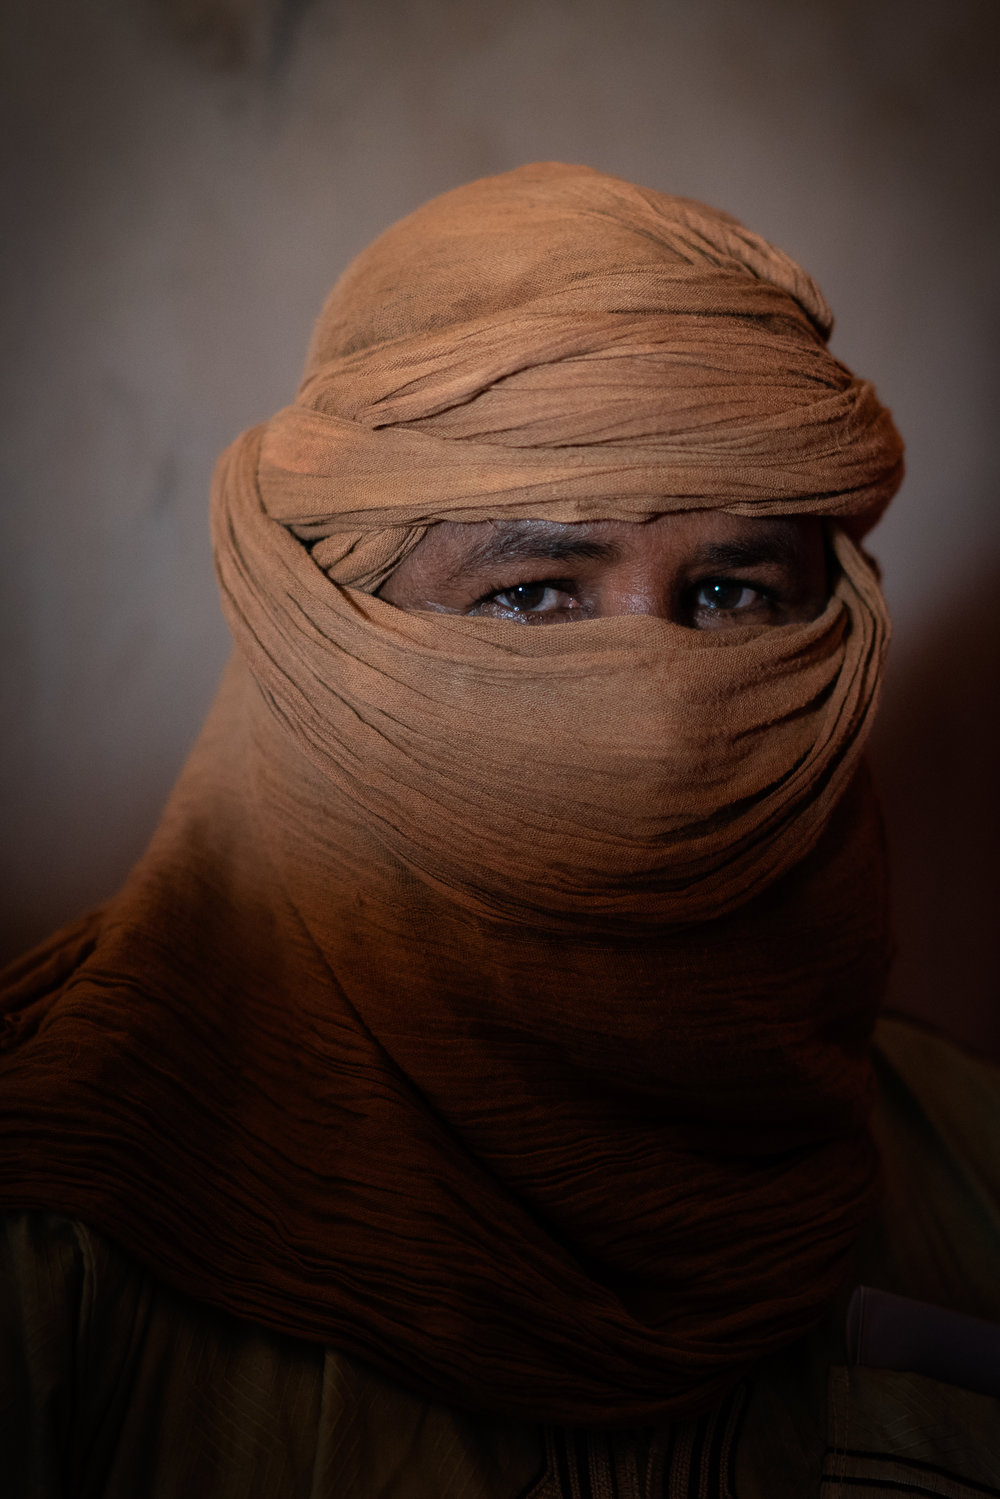 "An ex-smuggler in Agadez, Niger, Thursday, July 19, 2018. ""This place is now for the Americans and French,"" he says of Agadez, ""They took our livelihood and don't give us anything in return. Who says they can do that?"" CREDIT: Mackenzie Knowles-Coursin for The Wall Street Journal. NIGERSPY"